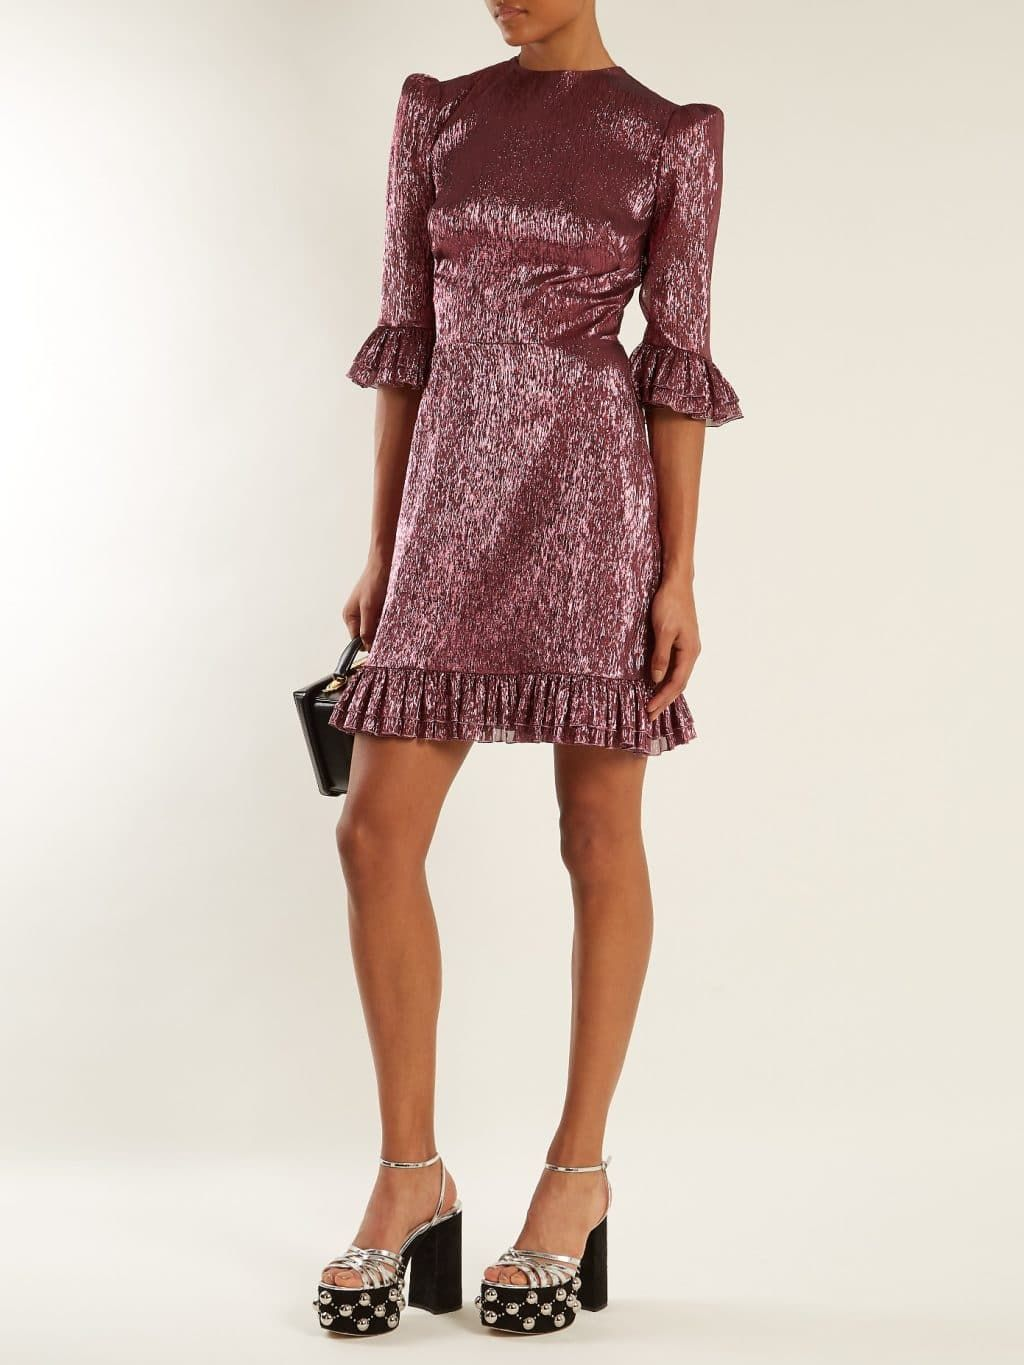 Loving this romantic s glamour mini dress new years eve party